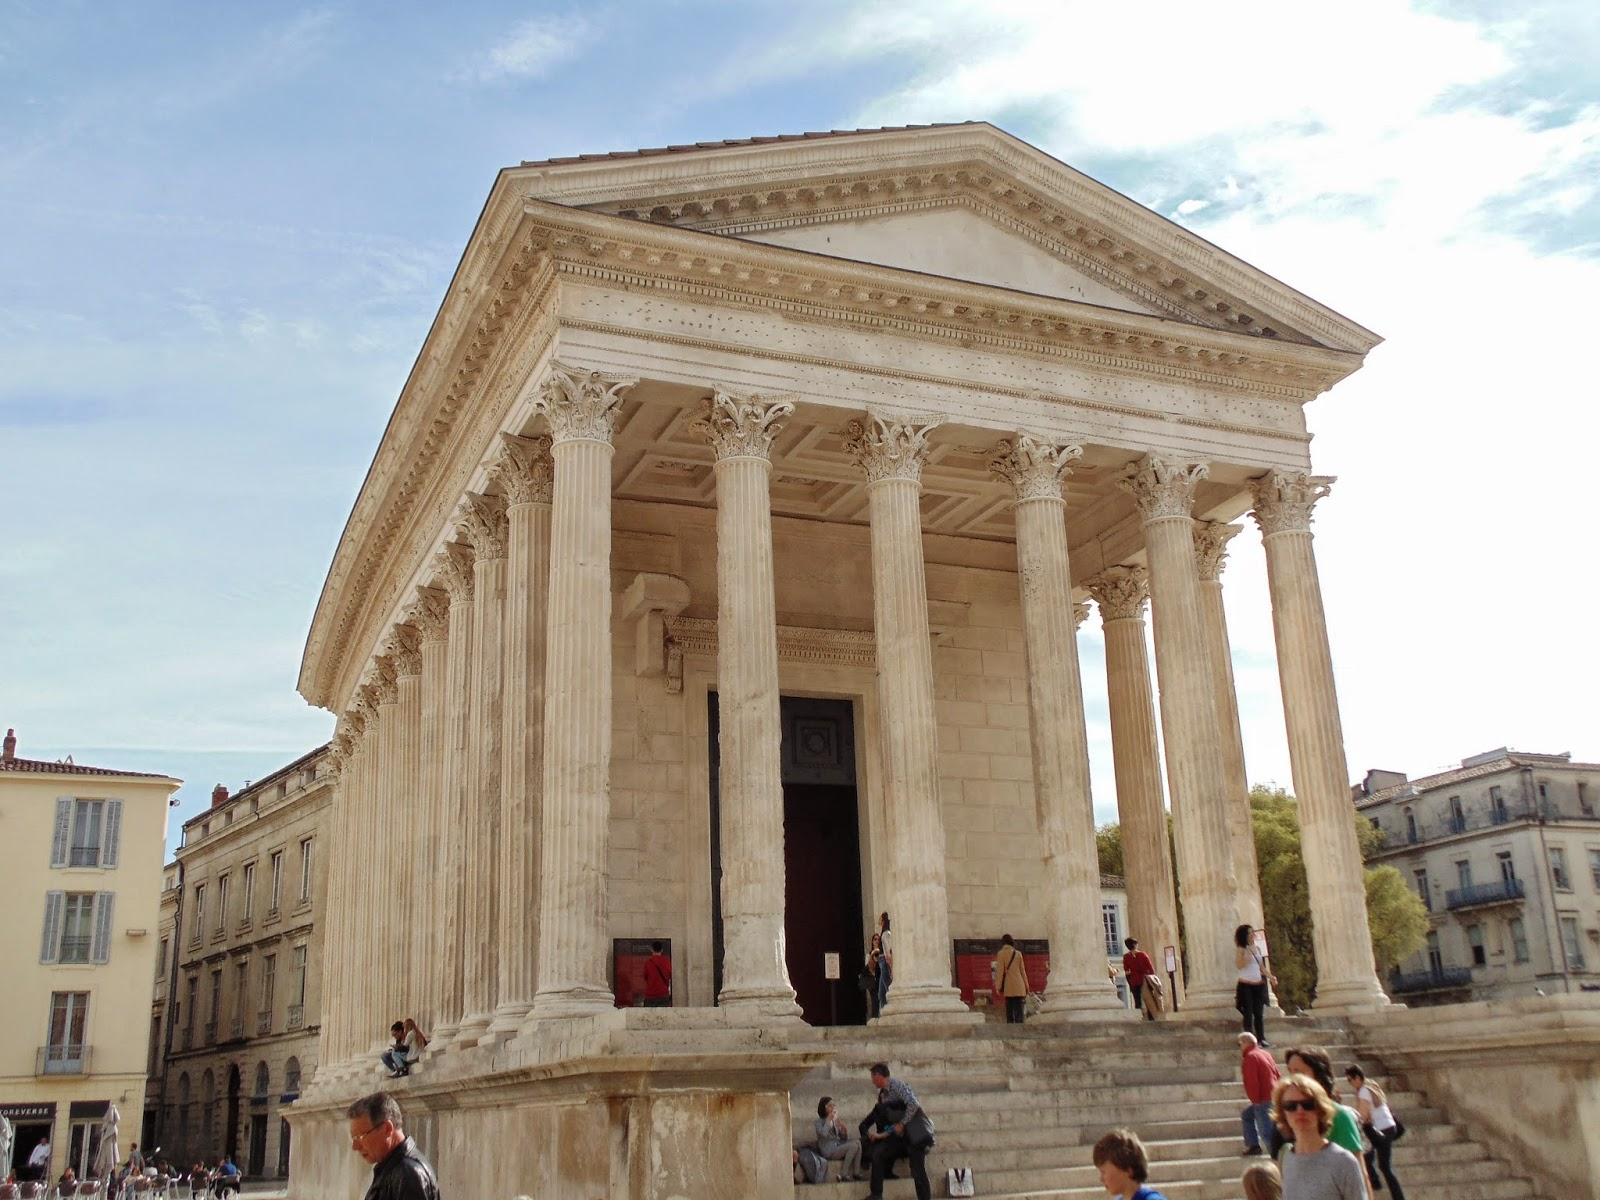 The maison carr e and the arena of n mes france life in - Maison carree nimes ...